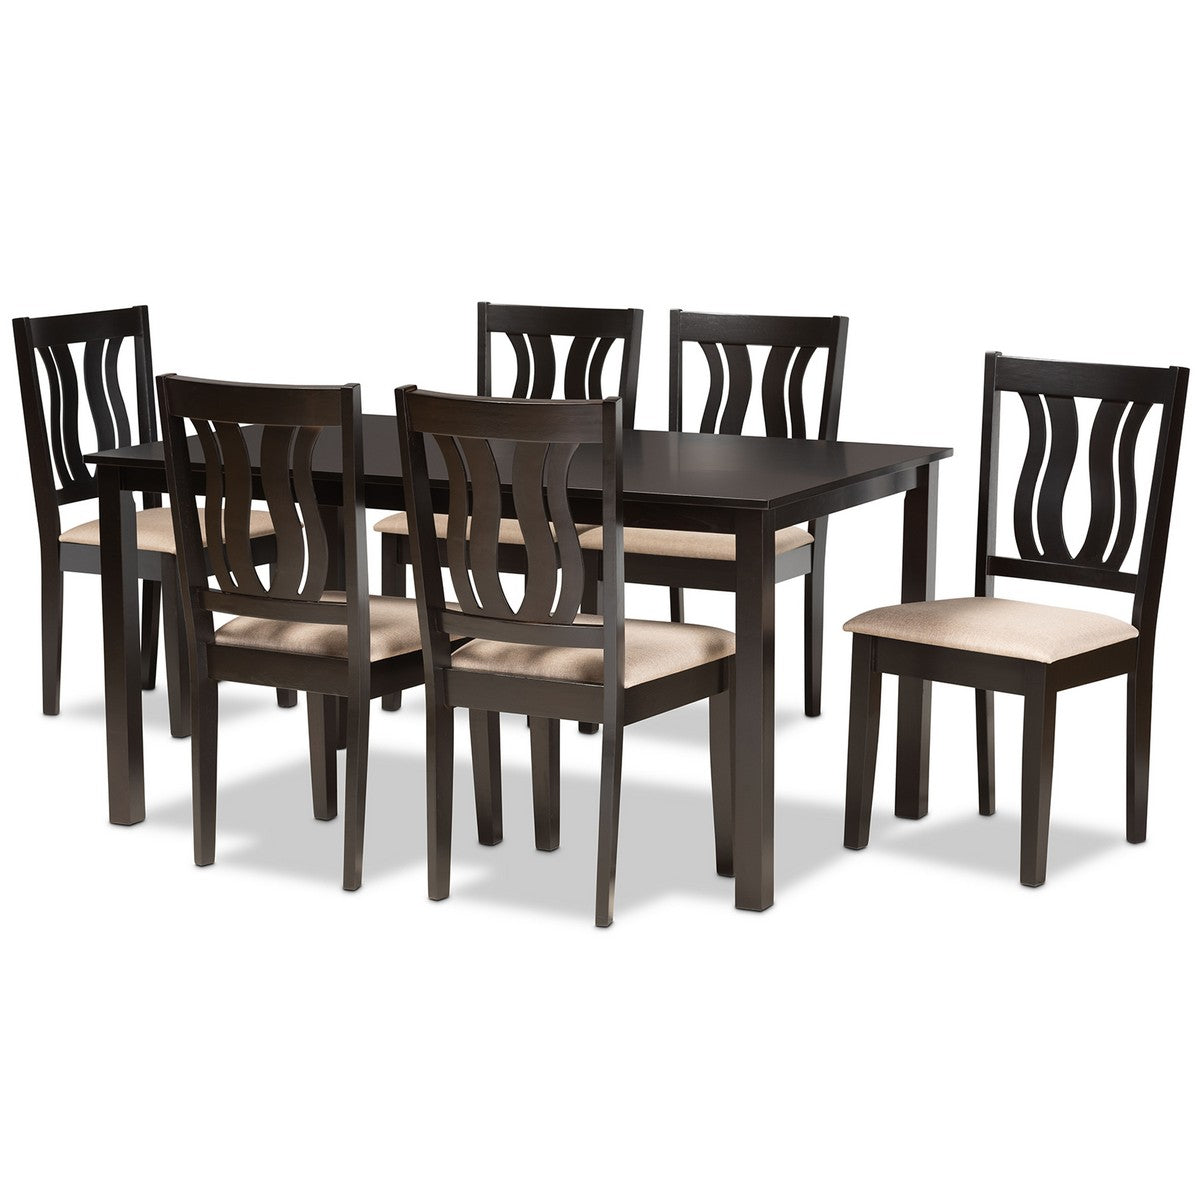 Baxton Studio Fenton Modern and Contemporary Sand Fabric Upholstered and Dark Brown Finished Wood 7-Piece Dining Set Baxton Studio-Dining Sets-Minimal And Modern - 1